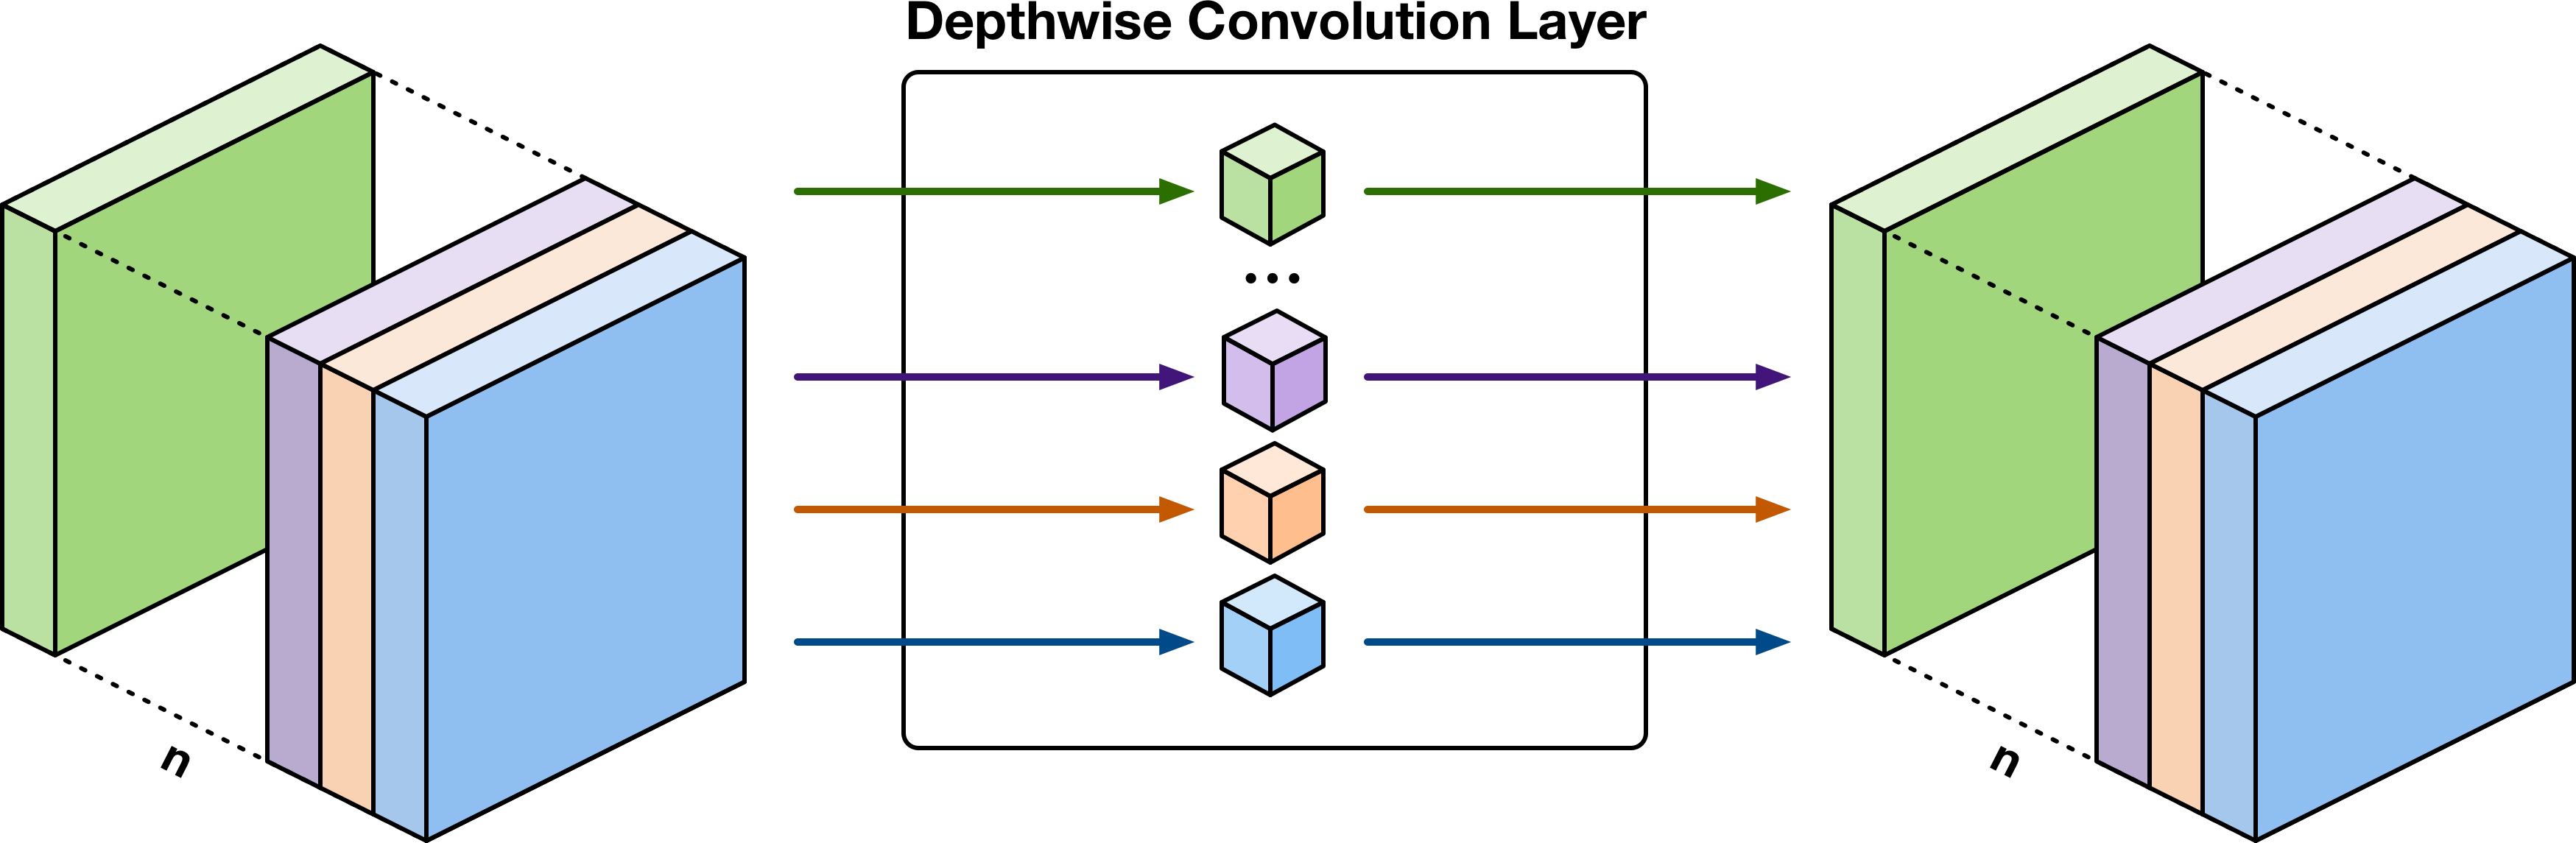 Depthwise convolution treats the channels independently